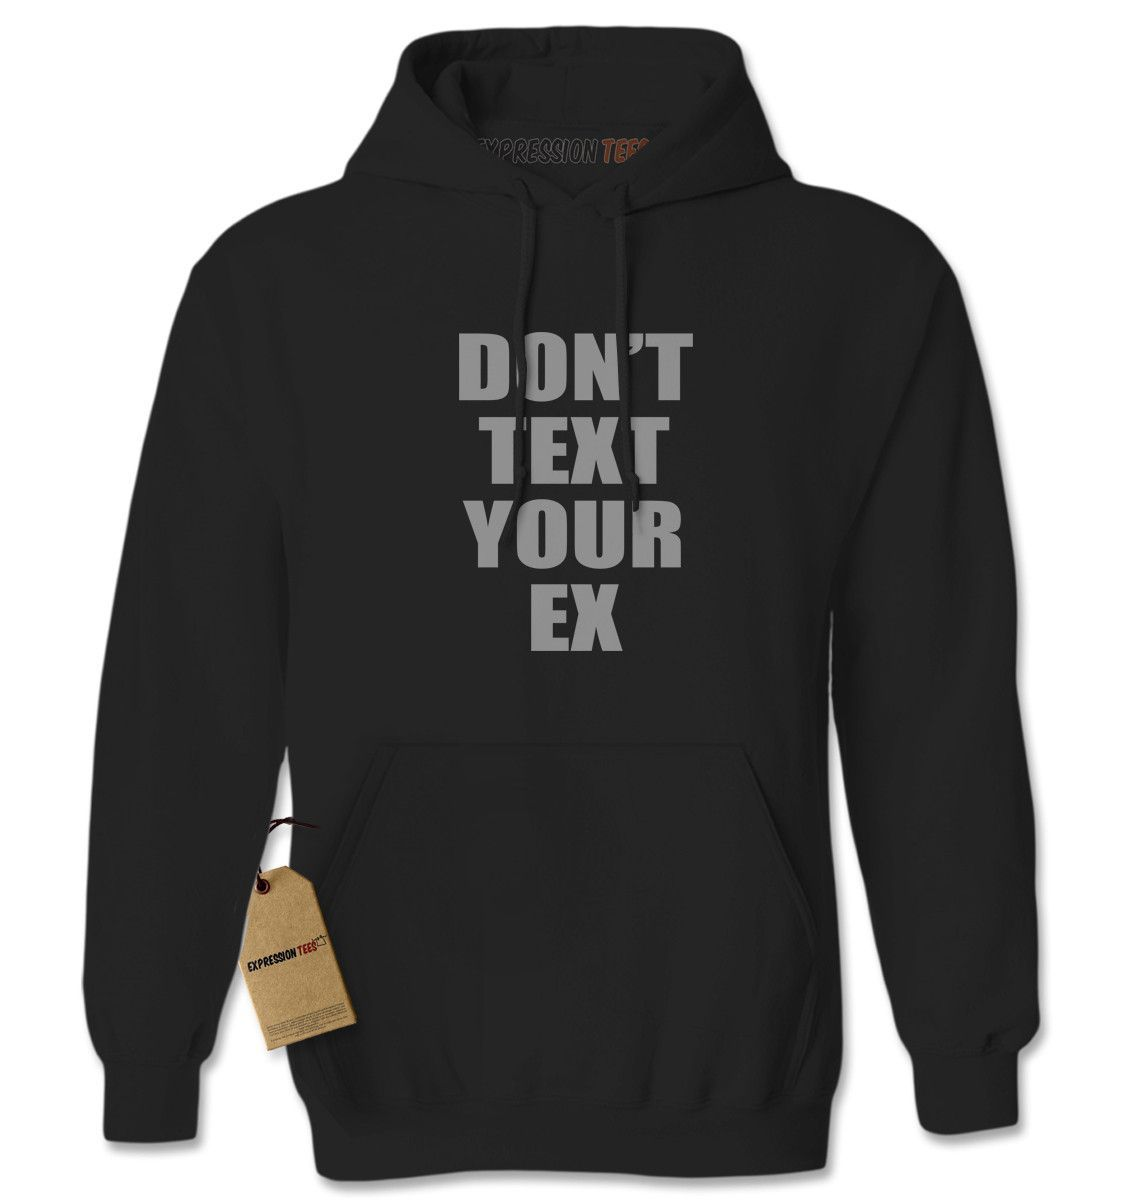 Don't Text Your Ex Funny Adult Hoodie Sweatshirt